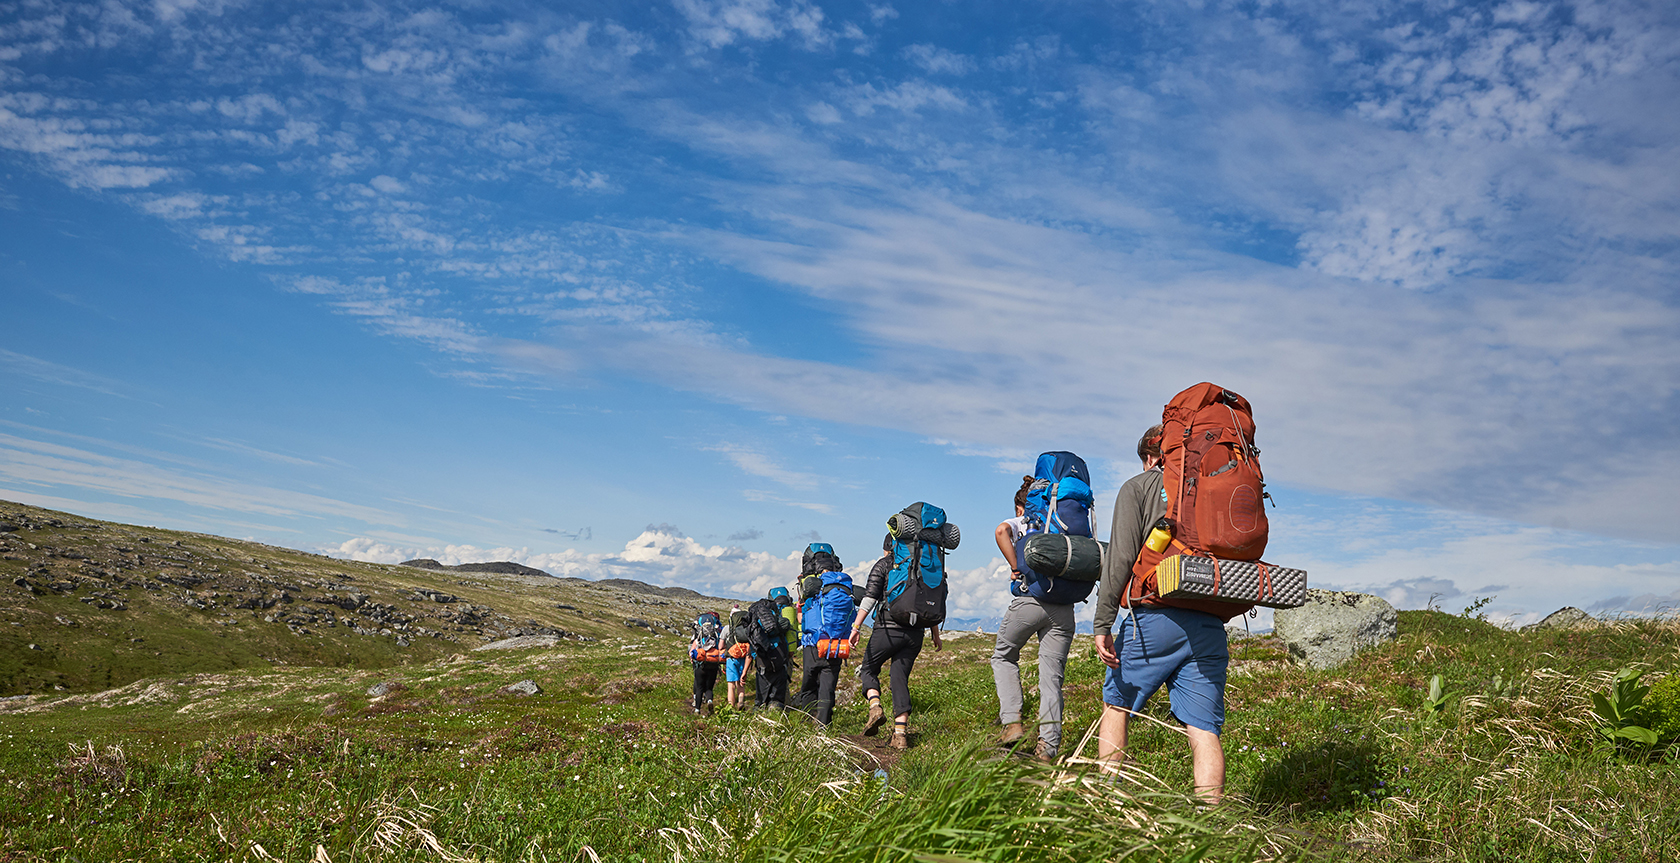 group of camper hiking with backpacks through open field